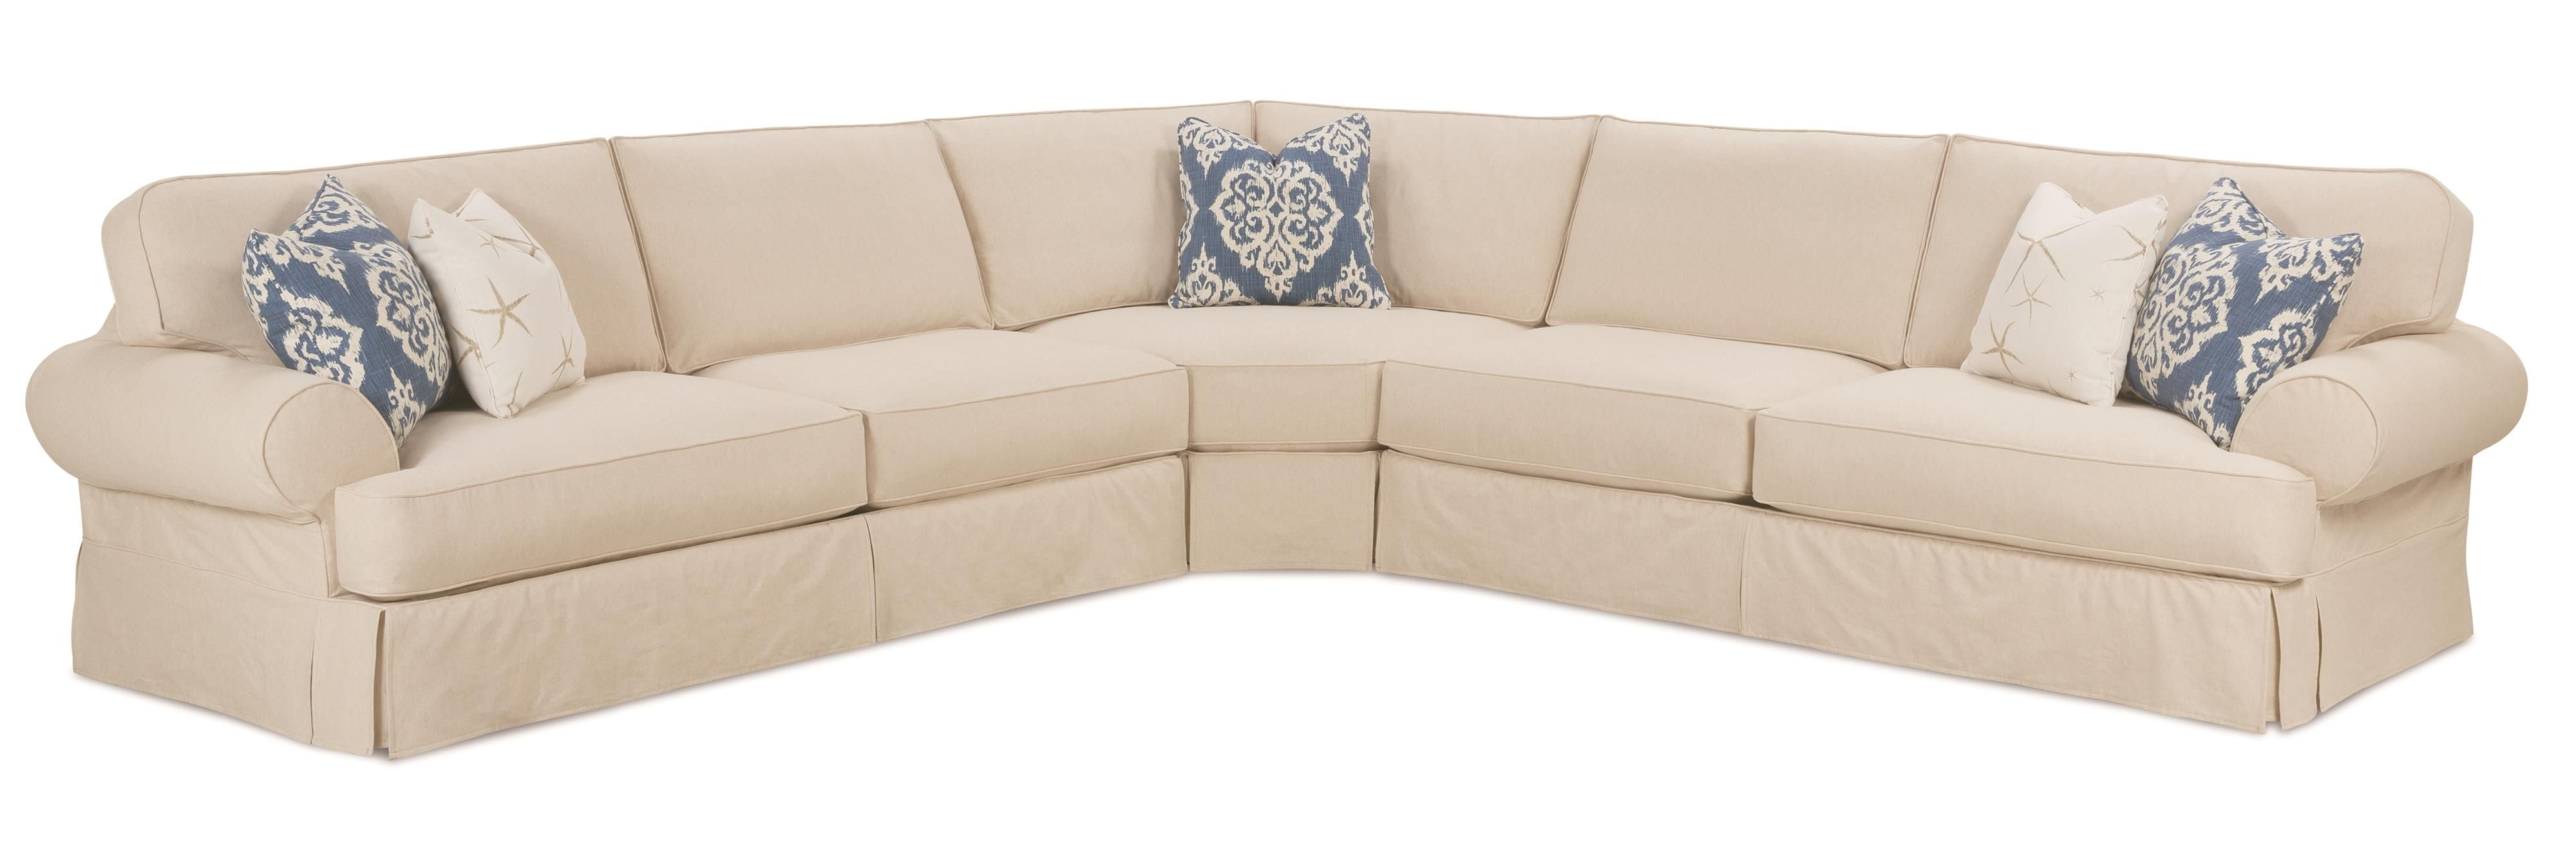 Paul schatz furniture portland or  Addison Traditional Sectional Sofa by Rowe  For the Home